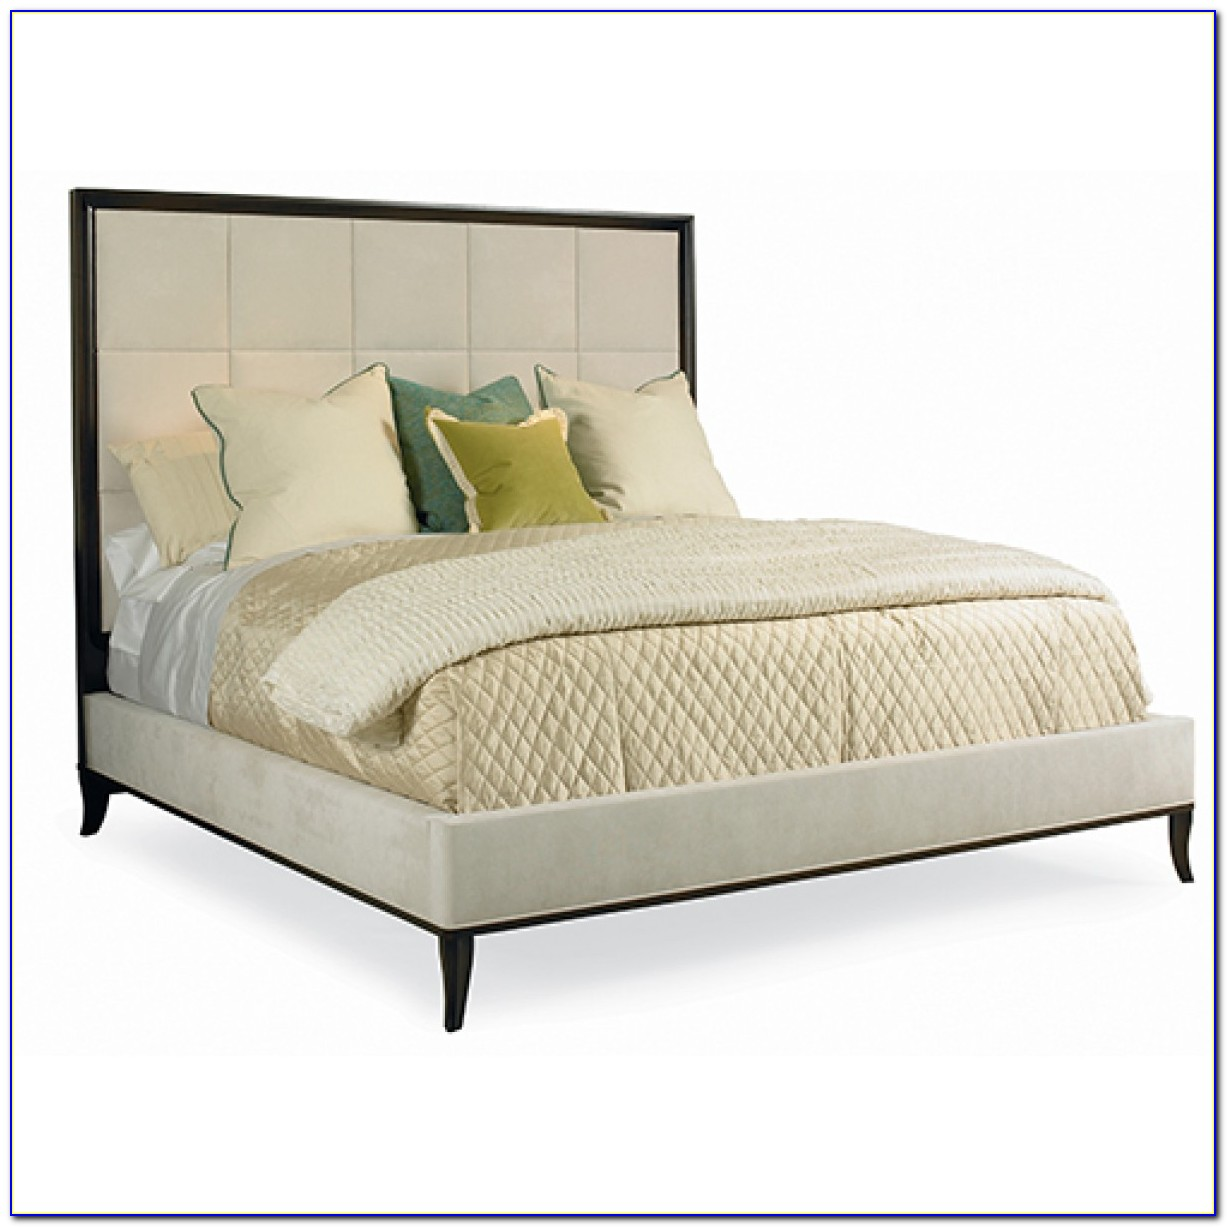 California King Bed Headboard Dimensions